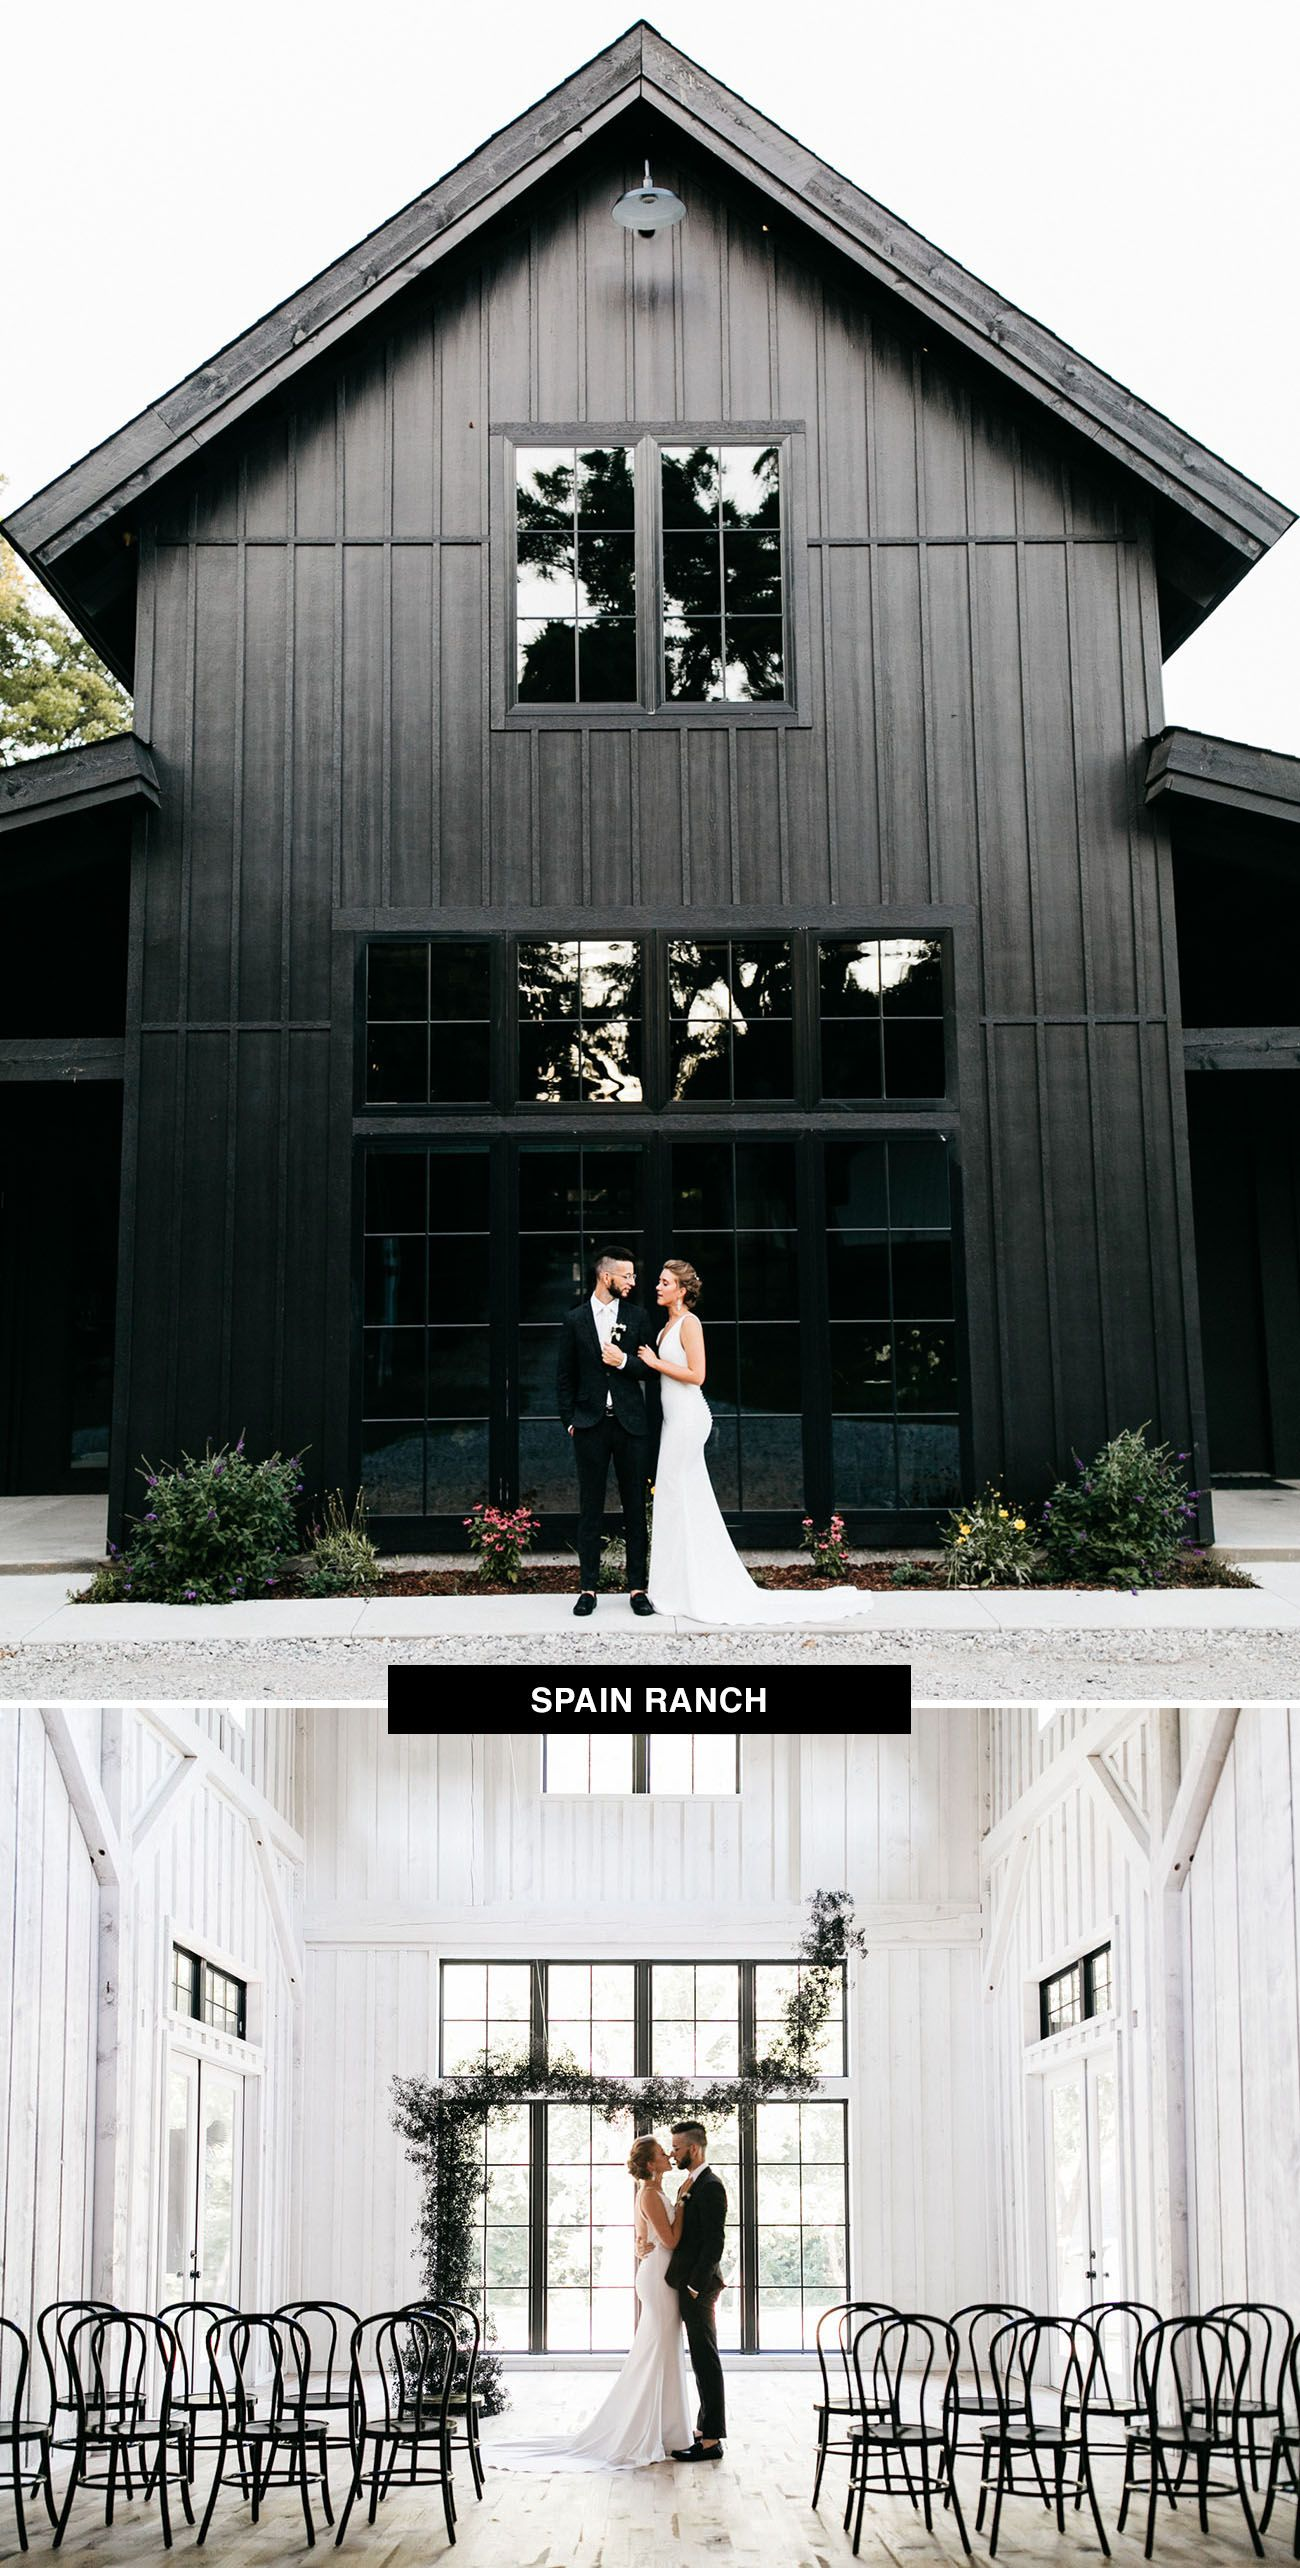 Top 26 Coolest Wedding Venues in the United States Ranch